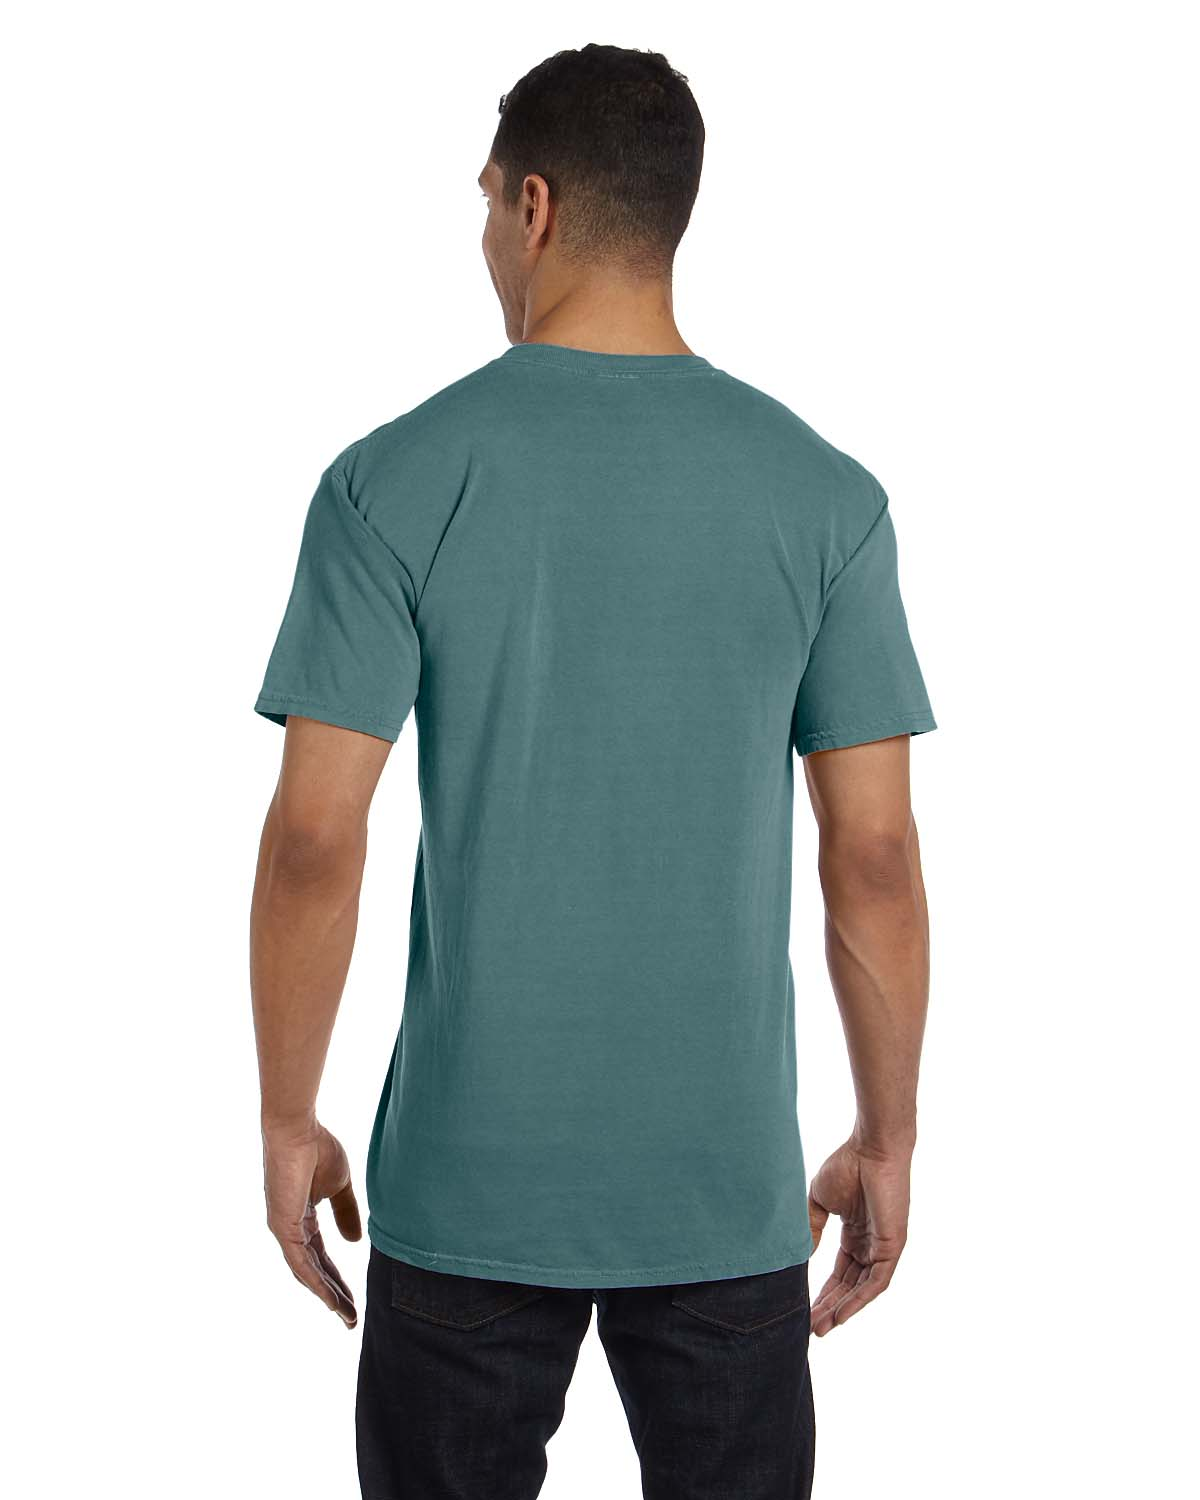 Comfort-Colors-Men-039-s-6-1-oz-Garment-Dyed-Pocket-T-Shirt-6030CC-S-3XL thumbnail 13